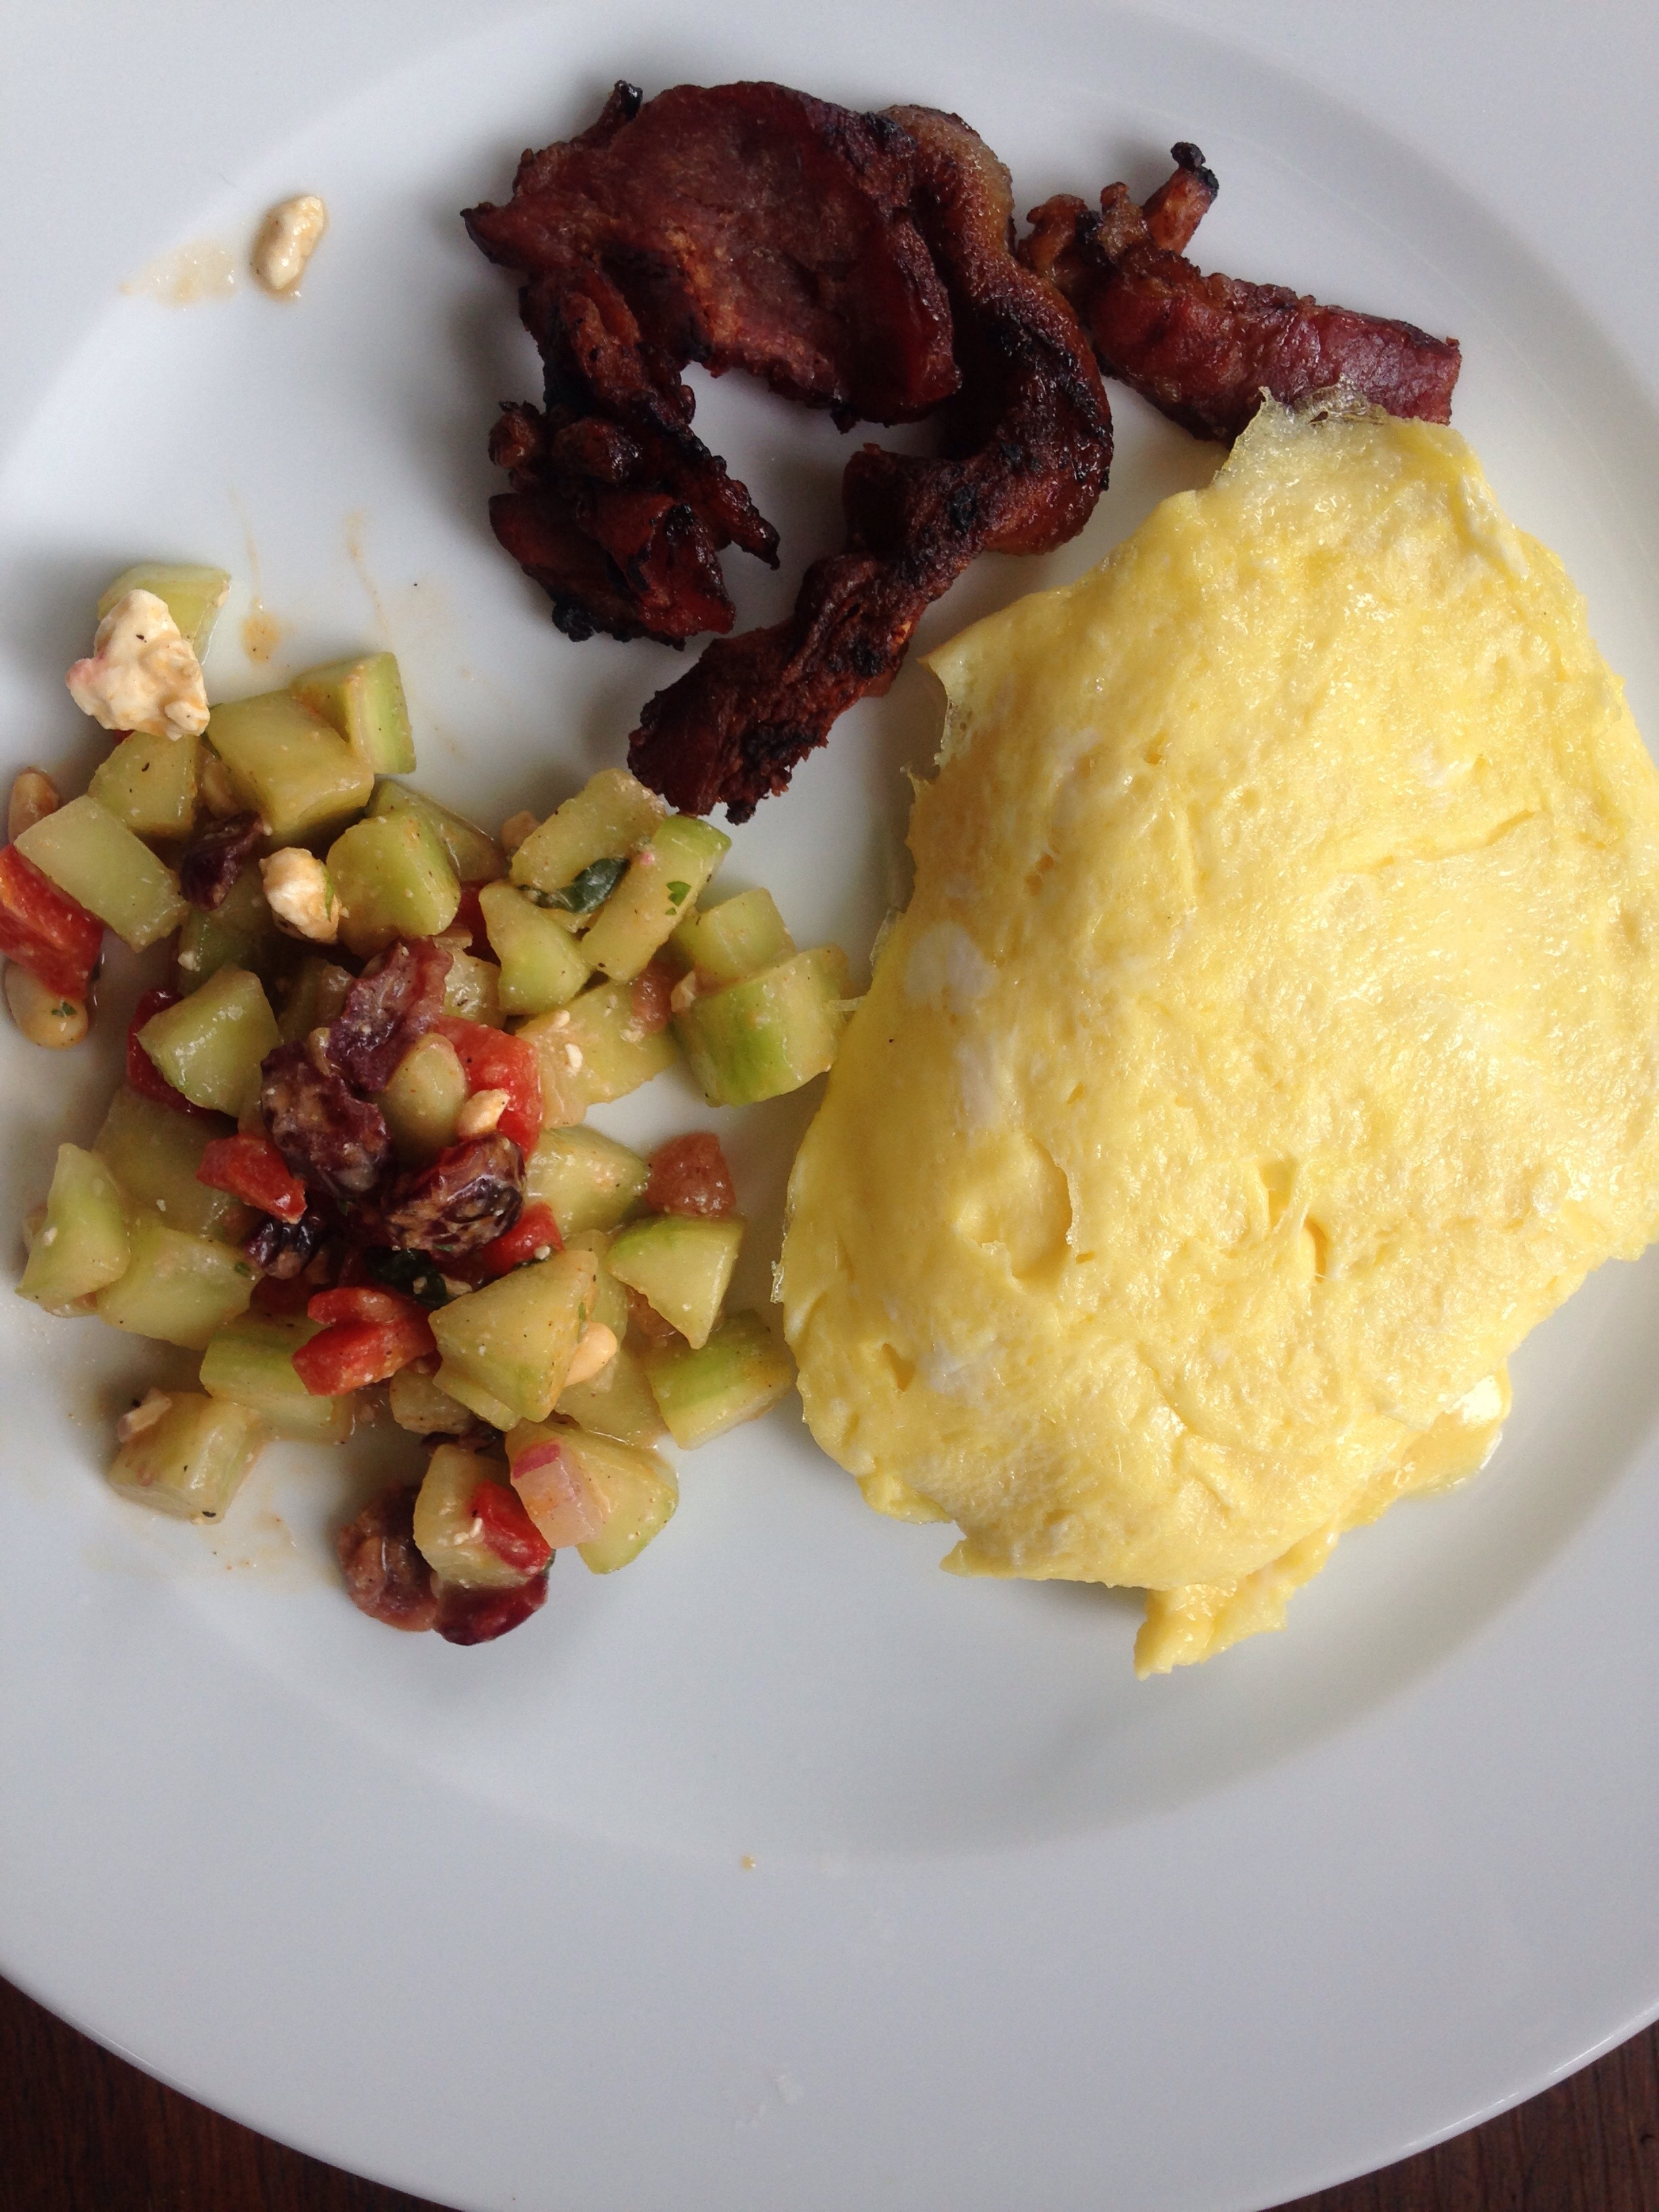 Broiled bacon, cucumber salad and egg omelette